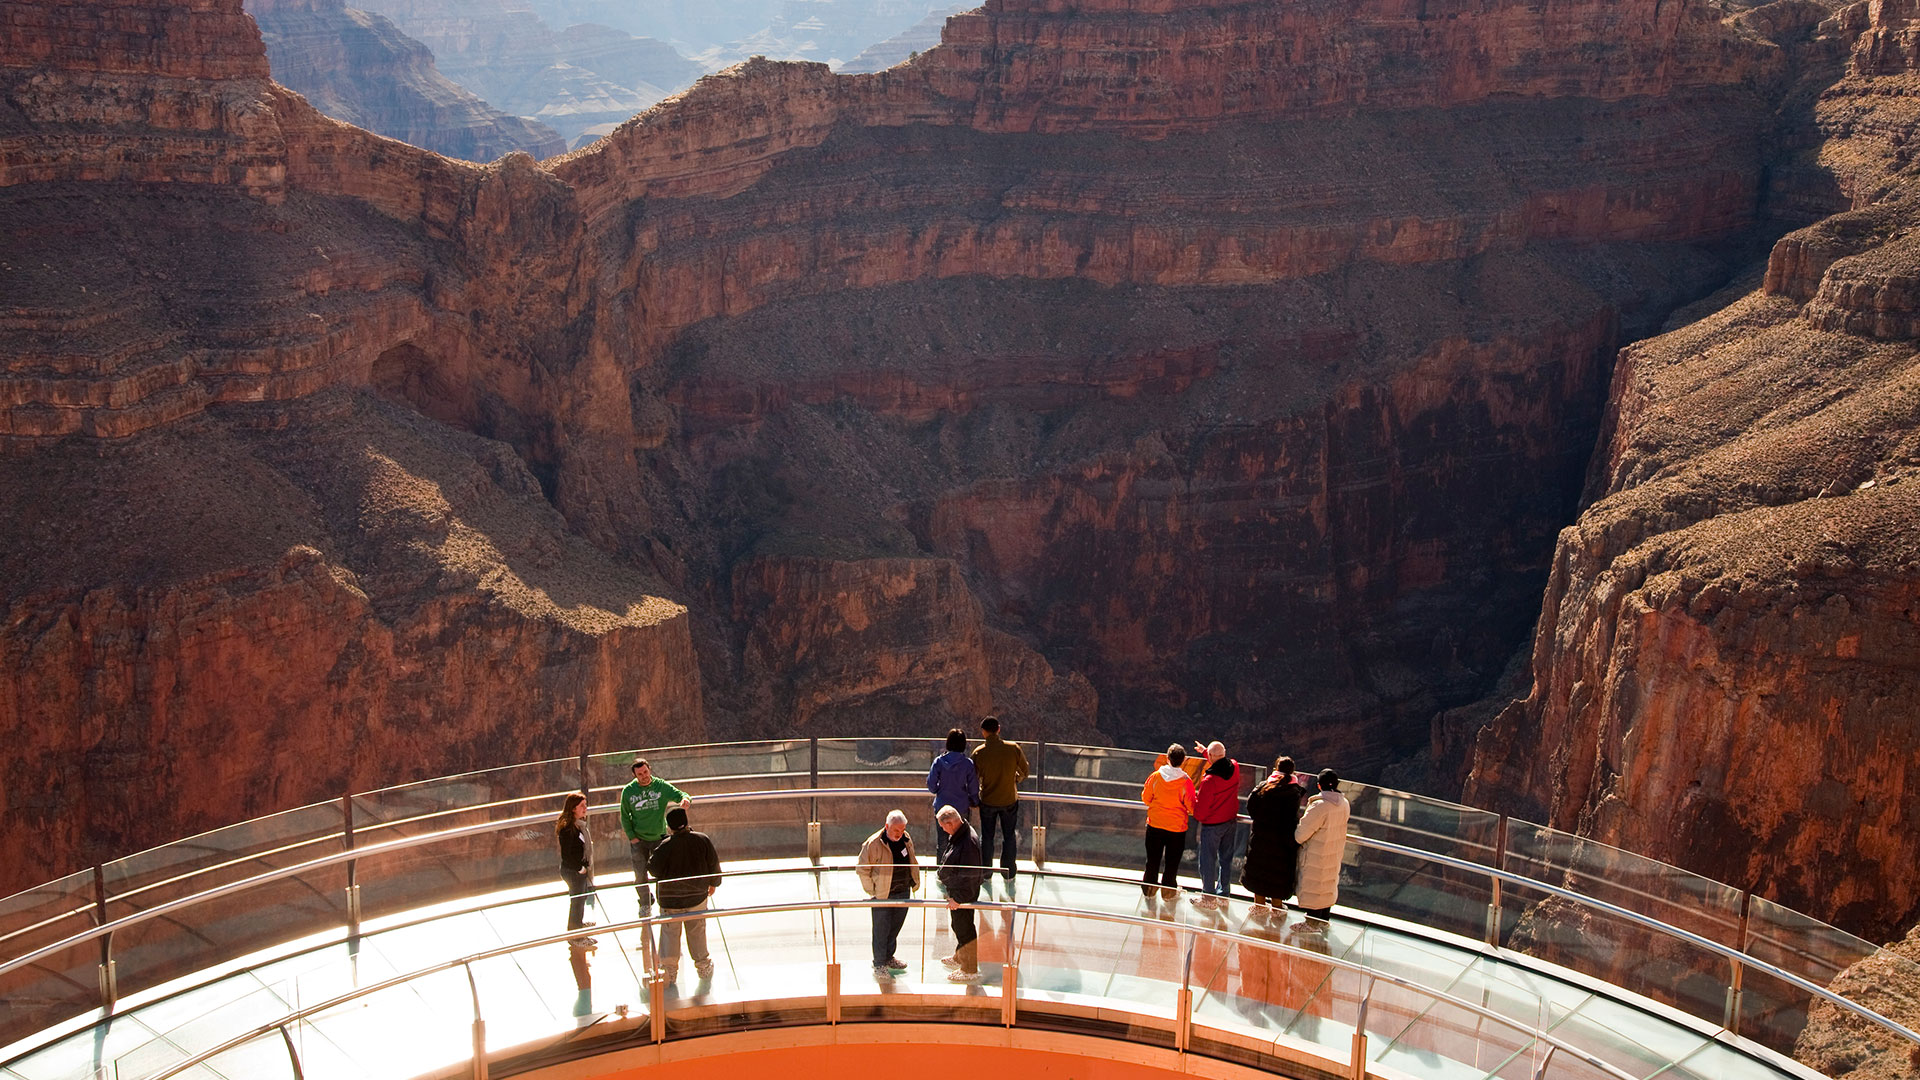 Guests looking through the glass floor of the Skywalk Bridge at the Grand Canyon West.